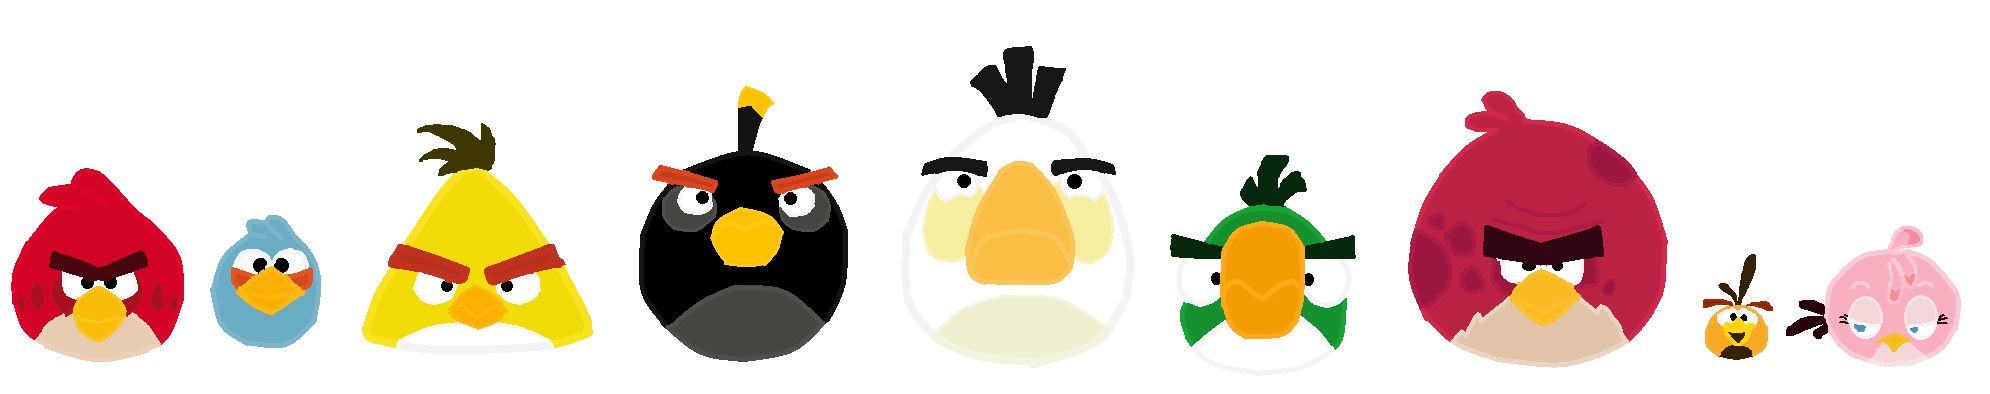 Angry Birds The Flock.png - Angry Birds, Transparent background PNG HD thumbnail